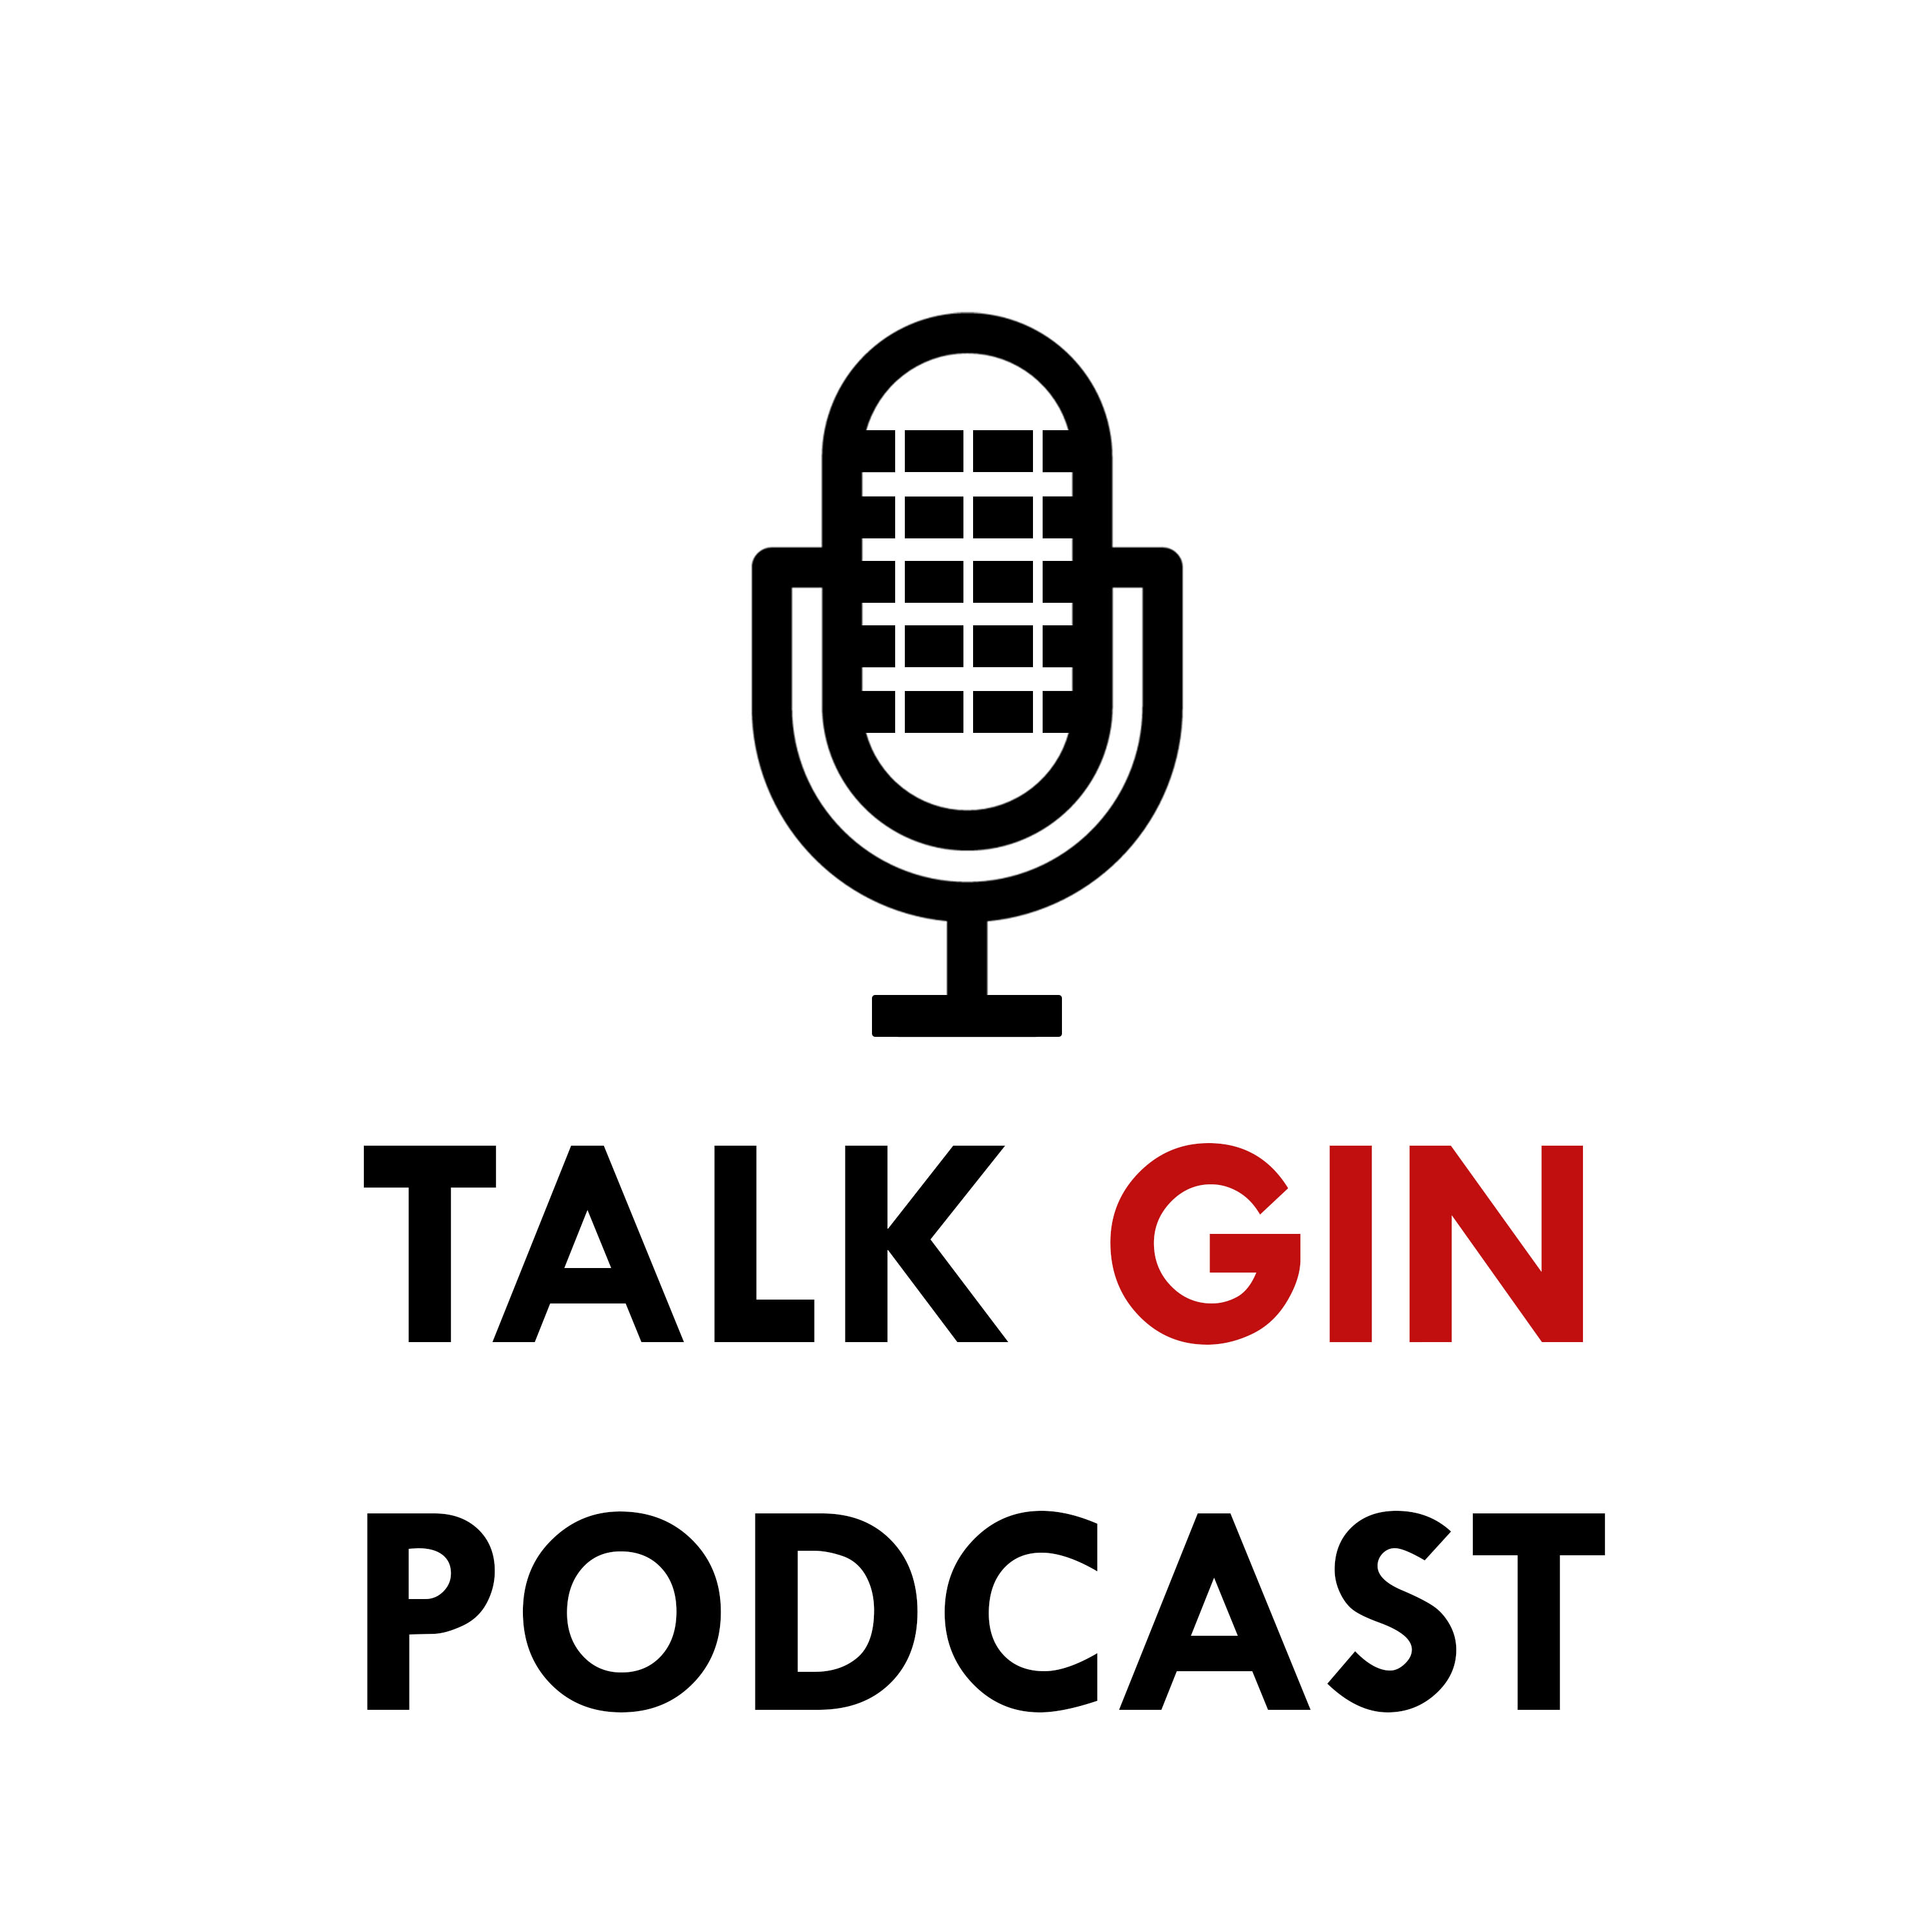 Talk Gin Podcast - Episode 4 - With Chris Brown - Four Pillars Gin, Herno Gin working for Love Drink